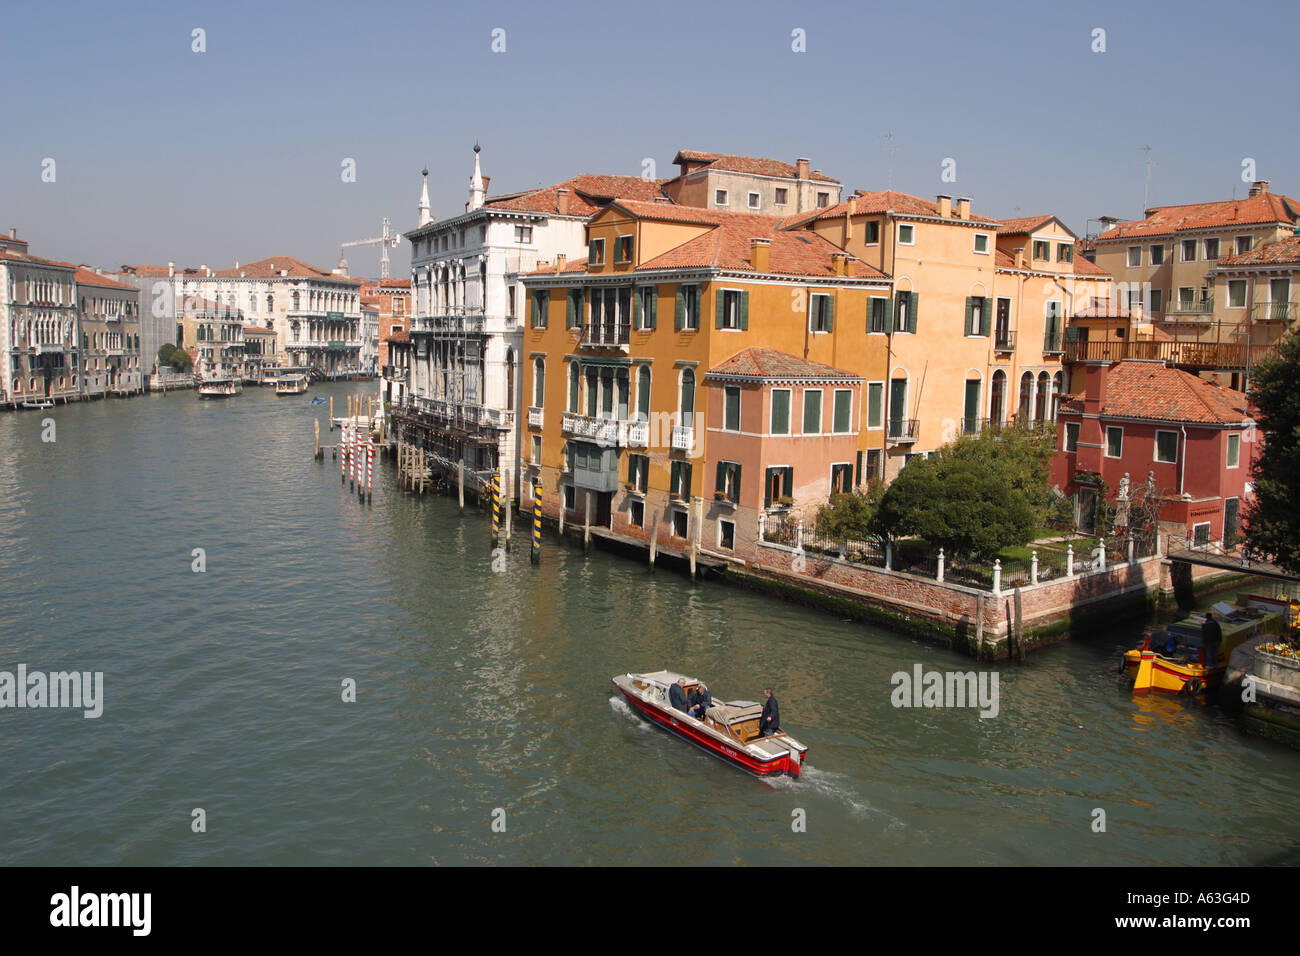 The Grand Canal Venice seen from the Academia Bridge Venice Italy taken 2005 - Stock Image